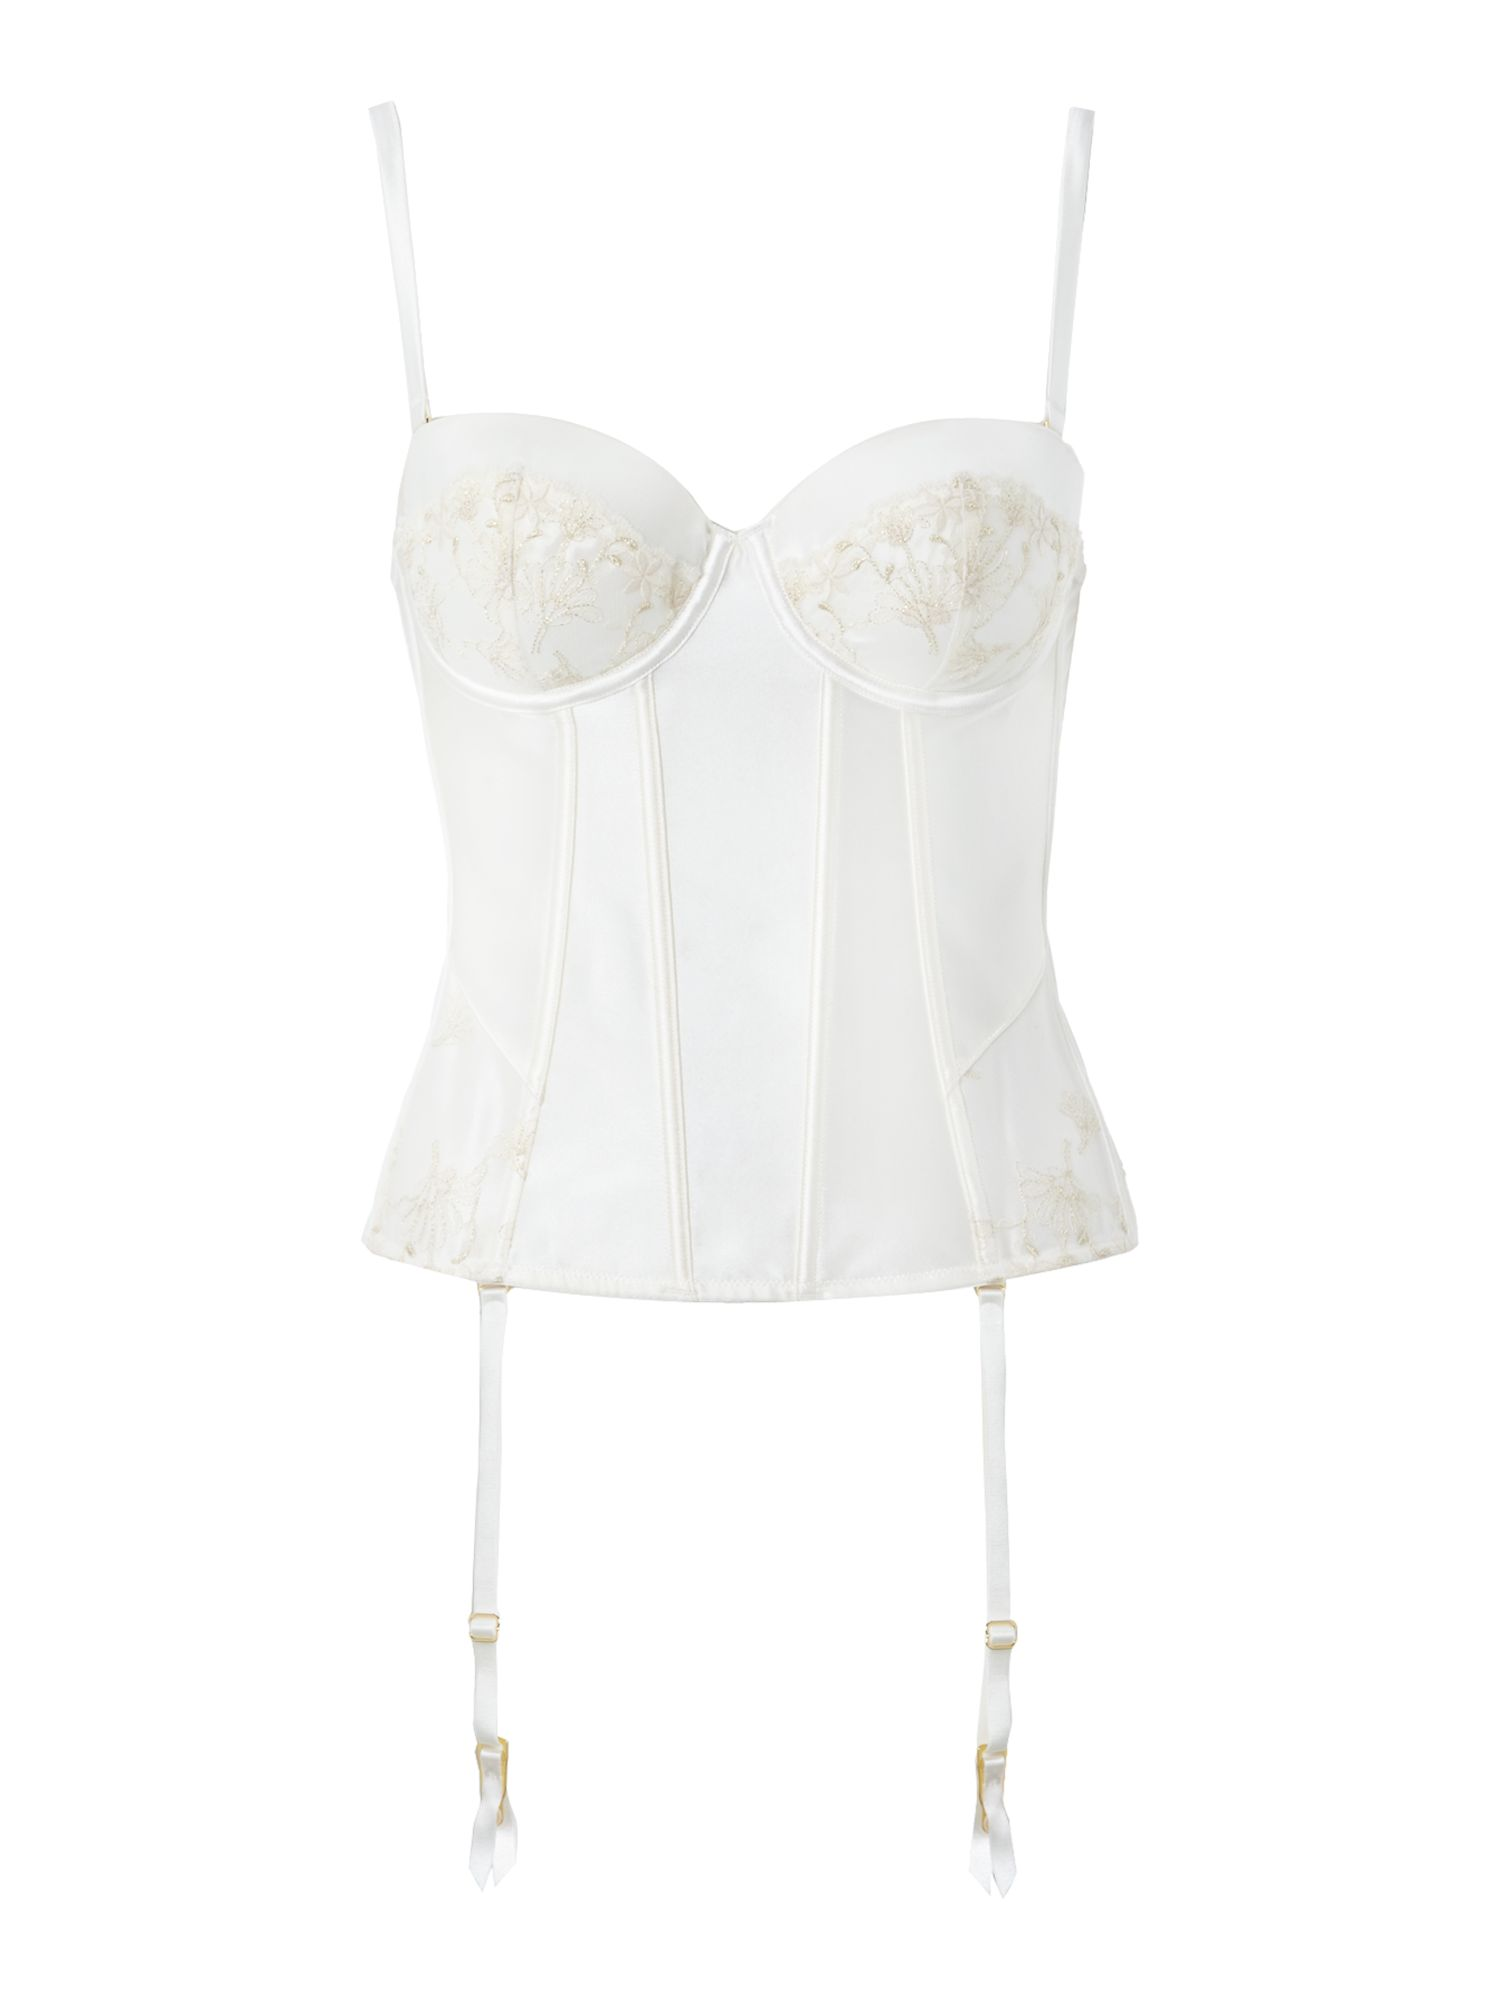 Amour bridal embroidery basque